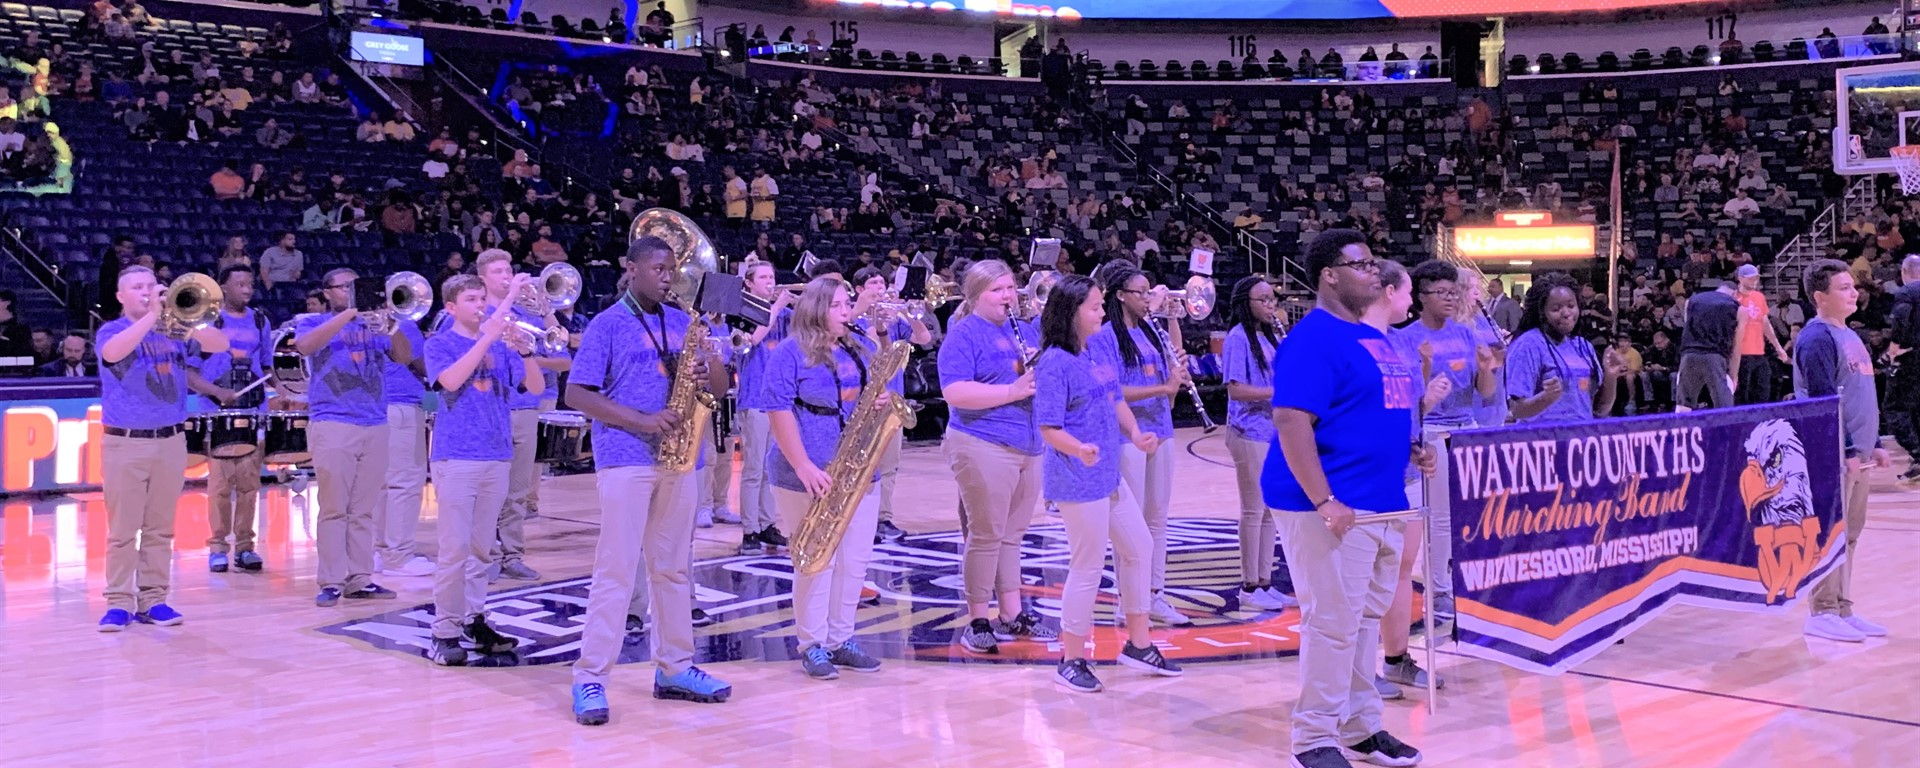 WCHS Band at New Orleans Pelicans basketball game last week against the LA. Lakers